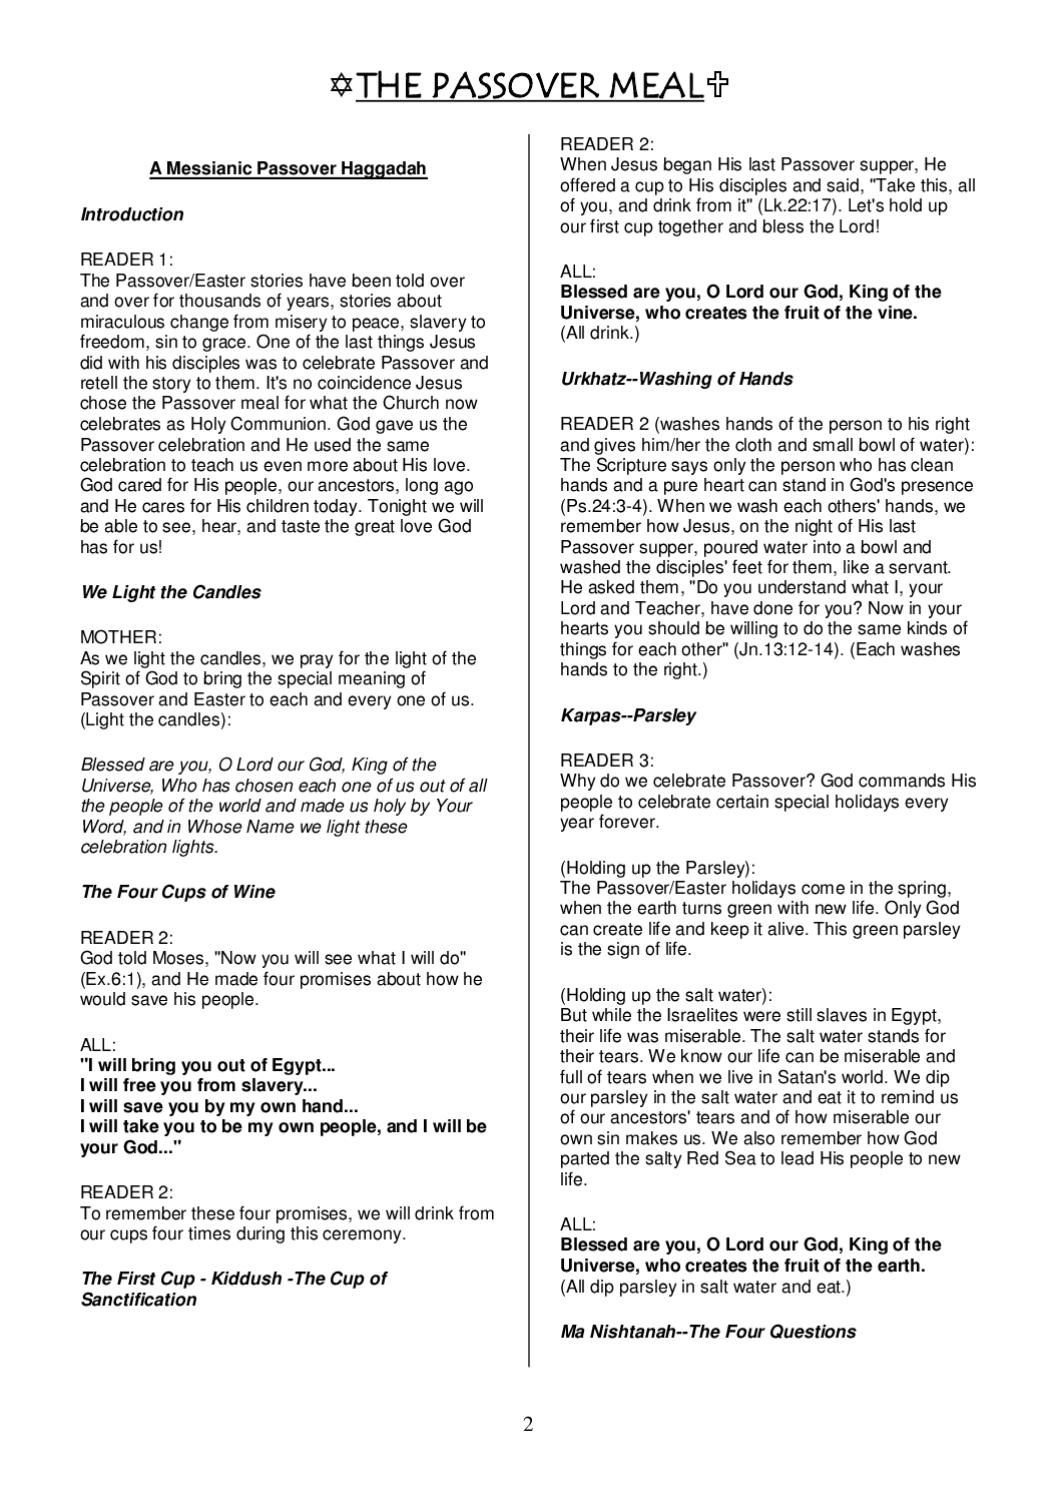 A Christian Passover Haggadah In 2019 | Bible Study | Passover - Free Printable Messianic Haggadah